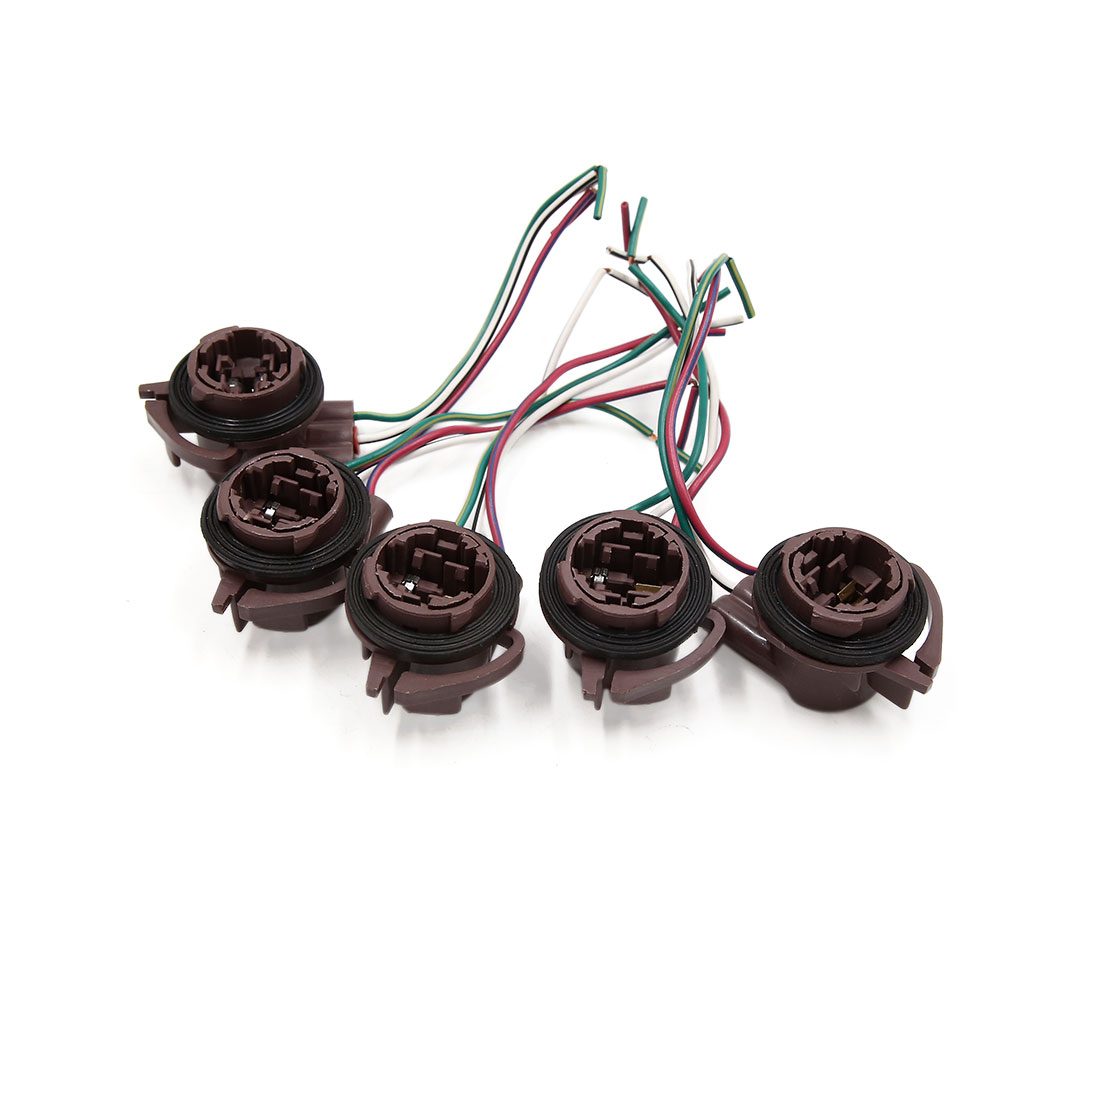 5pcs 3157 3 wires car turn signal light lamp bulb wired harness socket connector walmart canada [ 1100 x 1100 Pixel ]